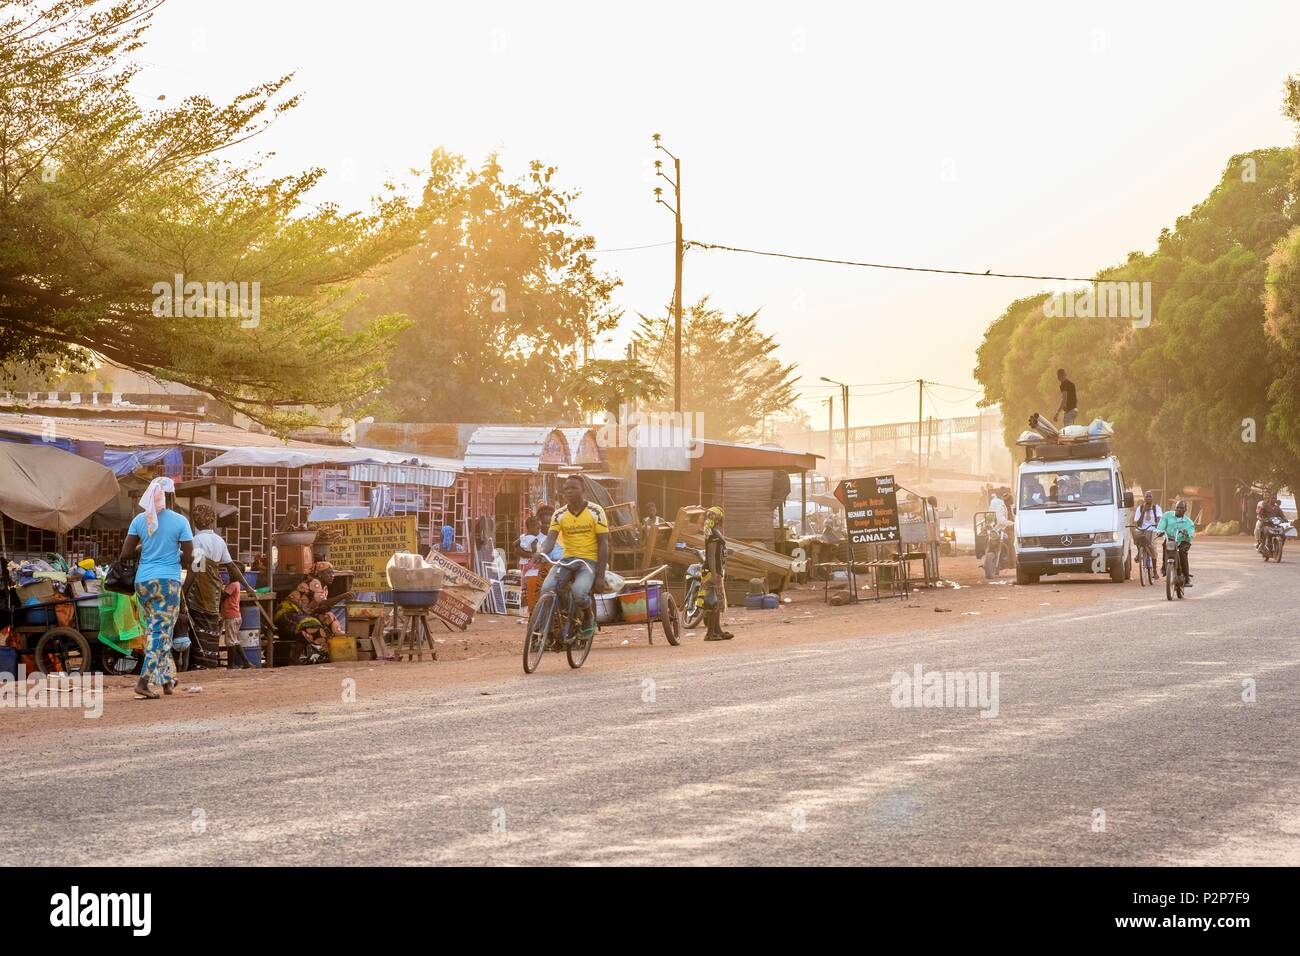 Burkina Faso, Banfora, capitale of Cascades region and Comoe province, N7 road - Stock Image